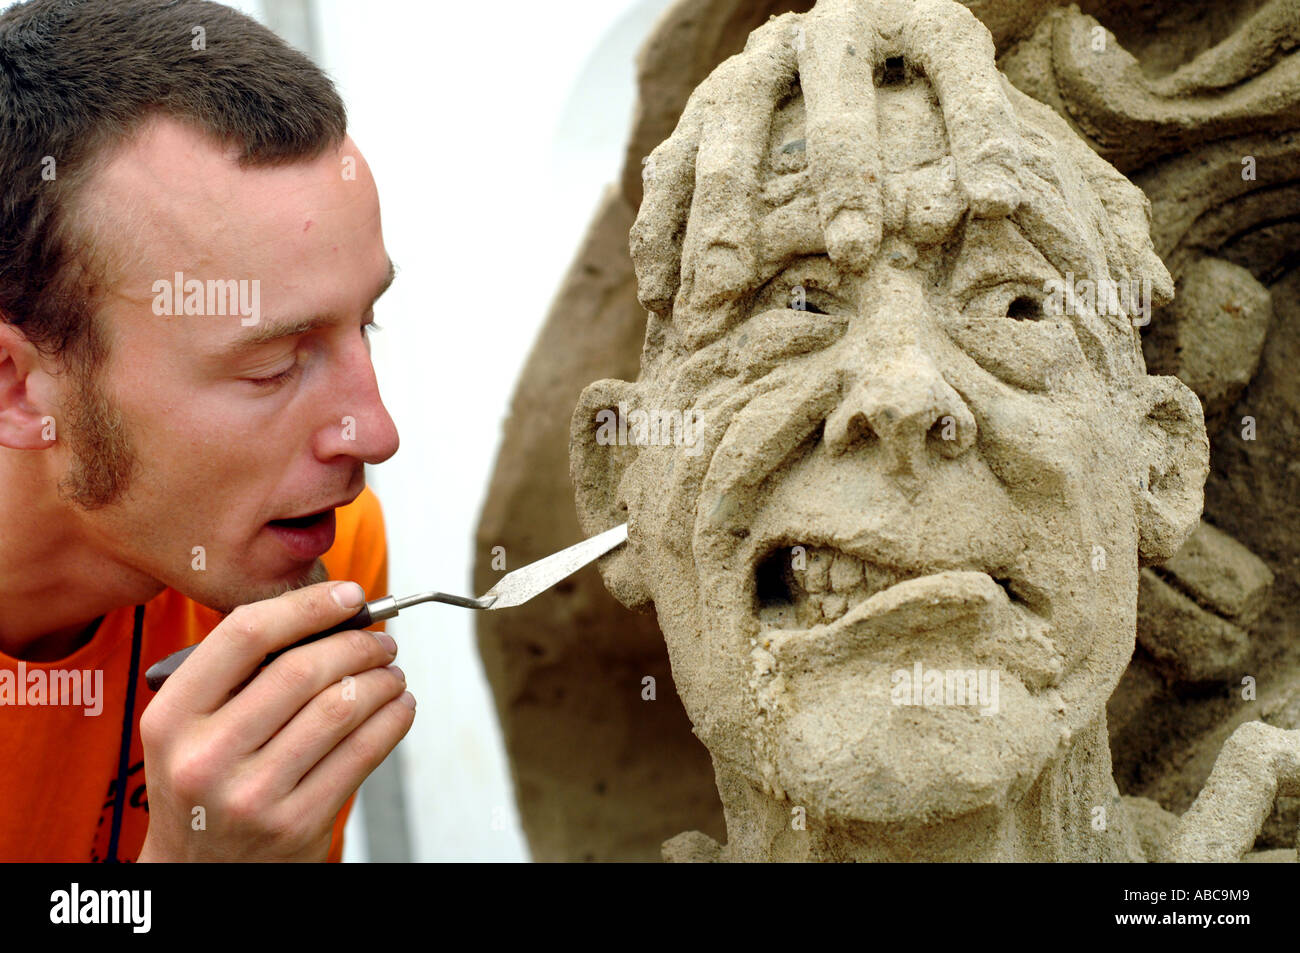 Now this won't hurt a bit. A sand sculptor creates a grotesque figure as part of a display based on the Roman Empire - Stock Image